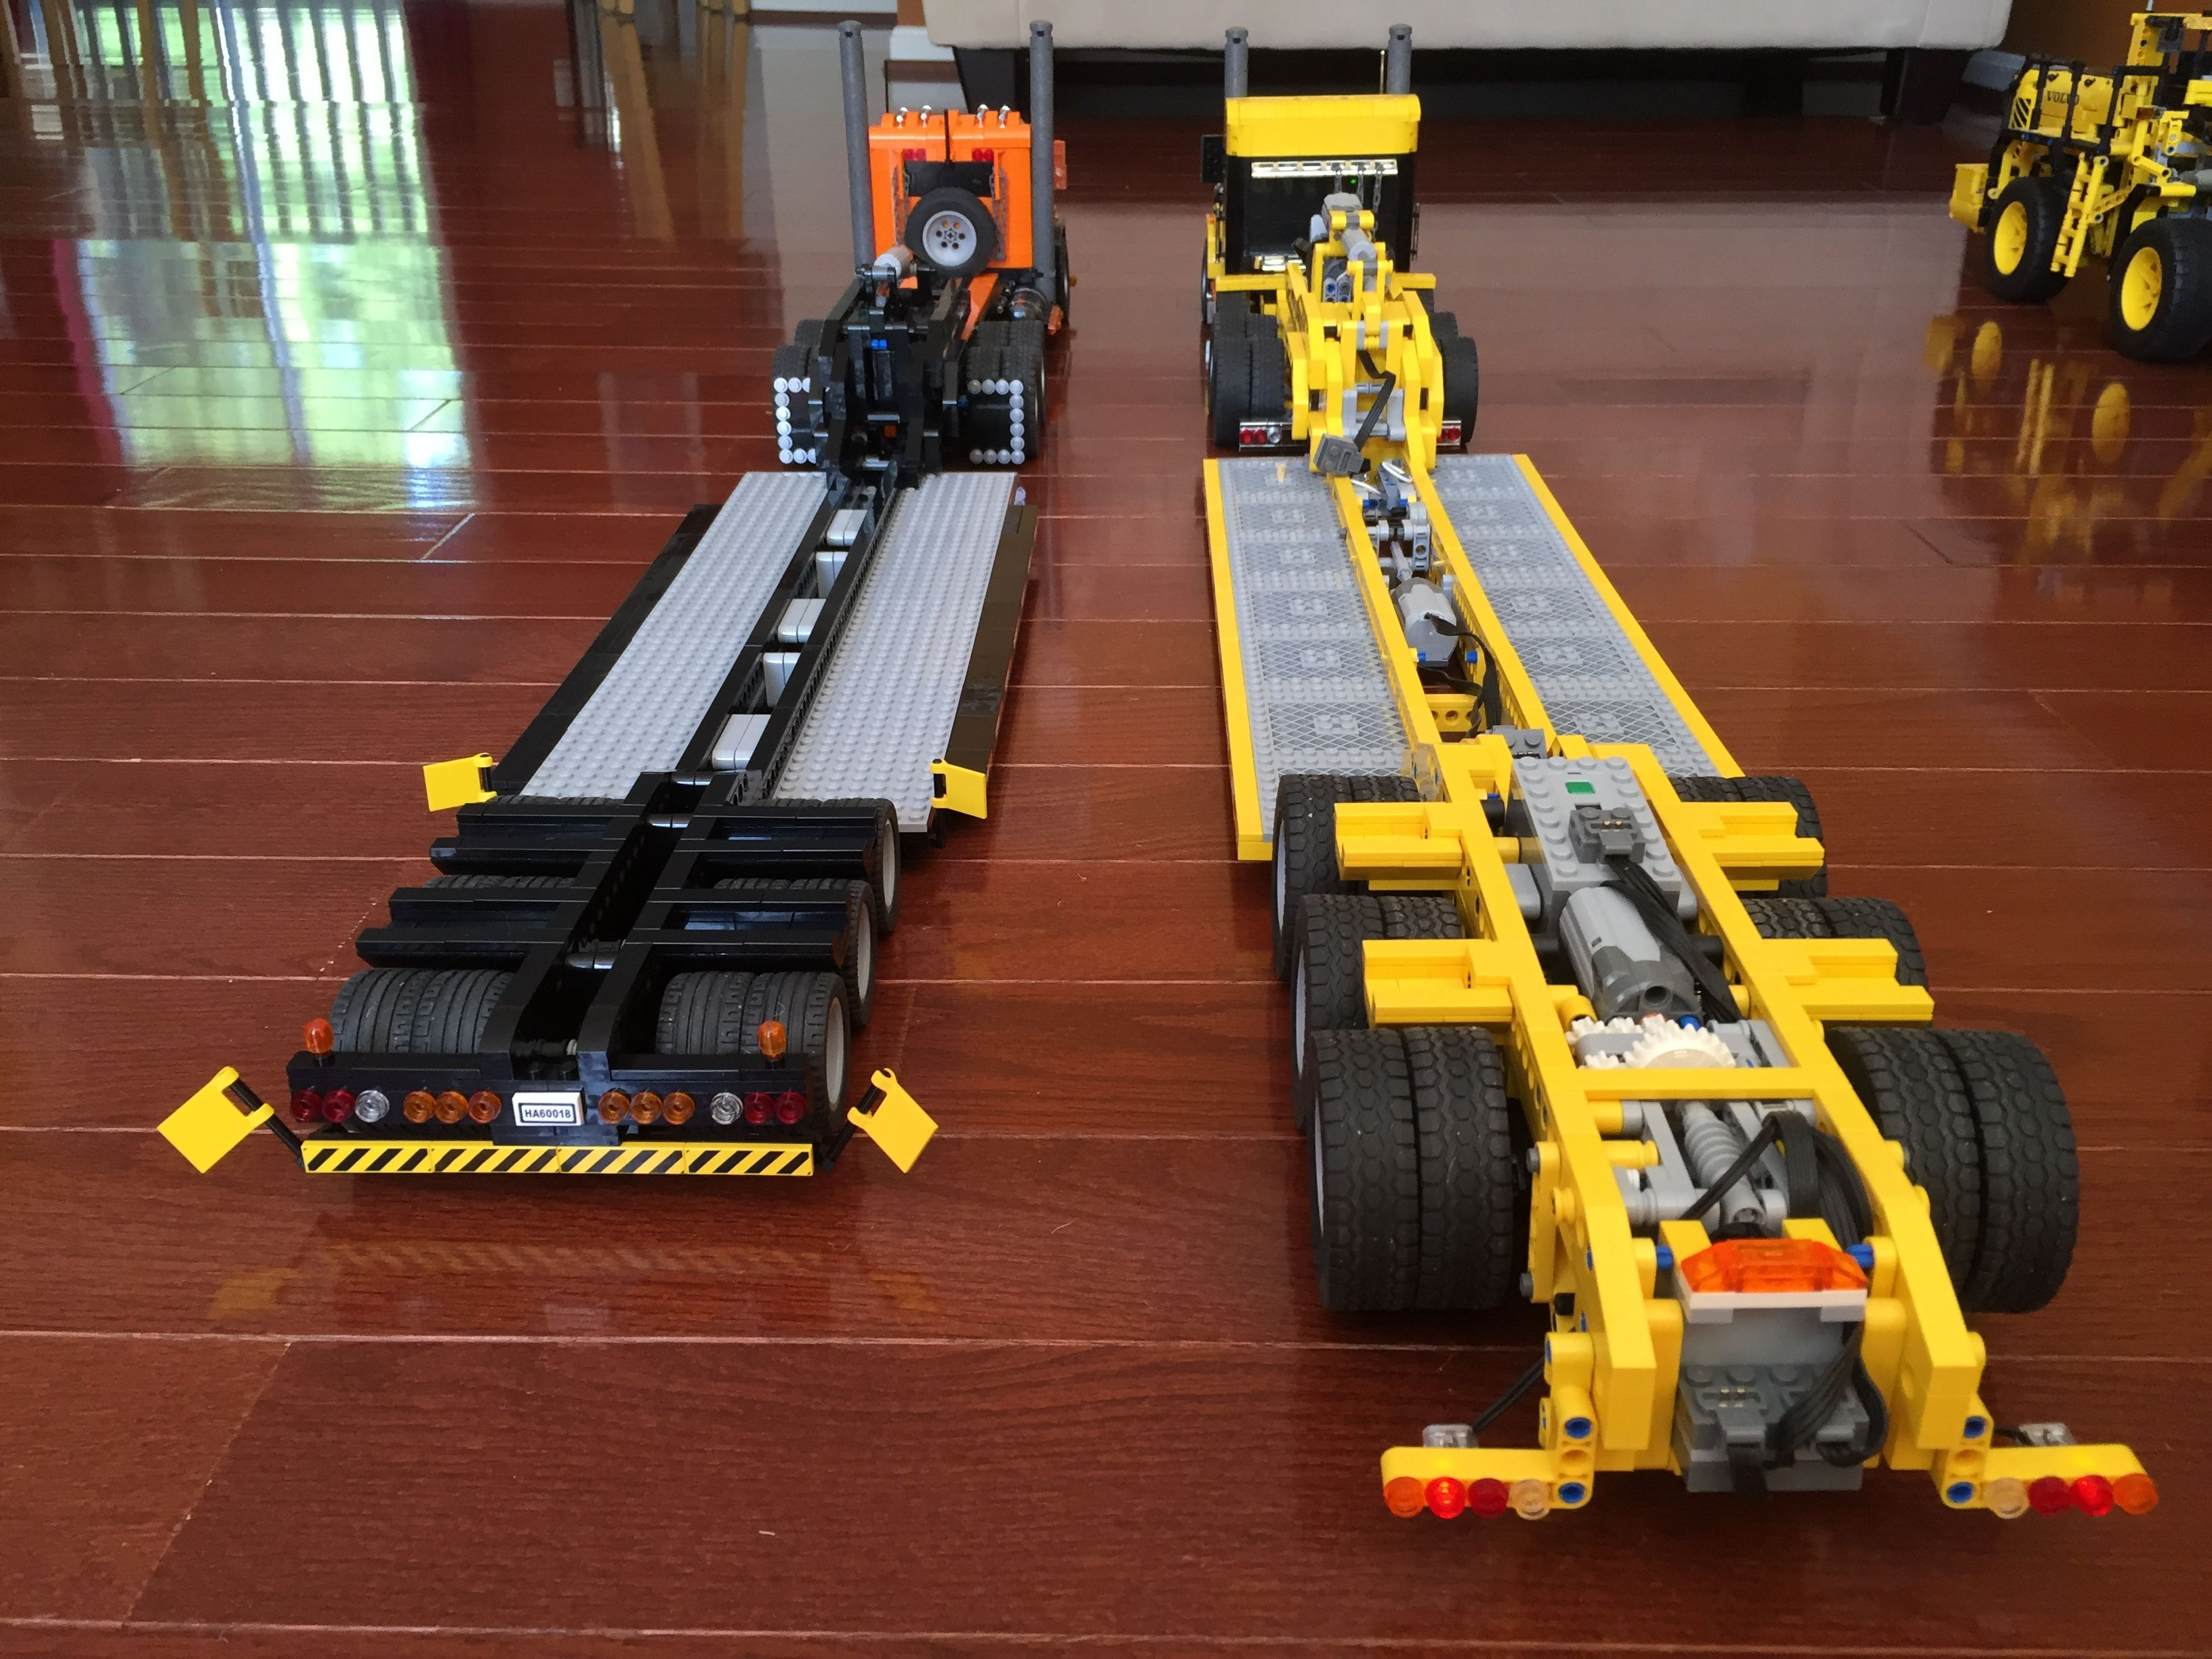 lowboy bricksafe lego technic modelle lego lkw lego. Black Bedroom Furniture Sets. Home Design Ideas